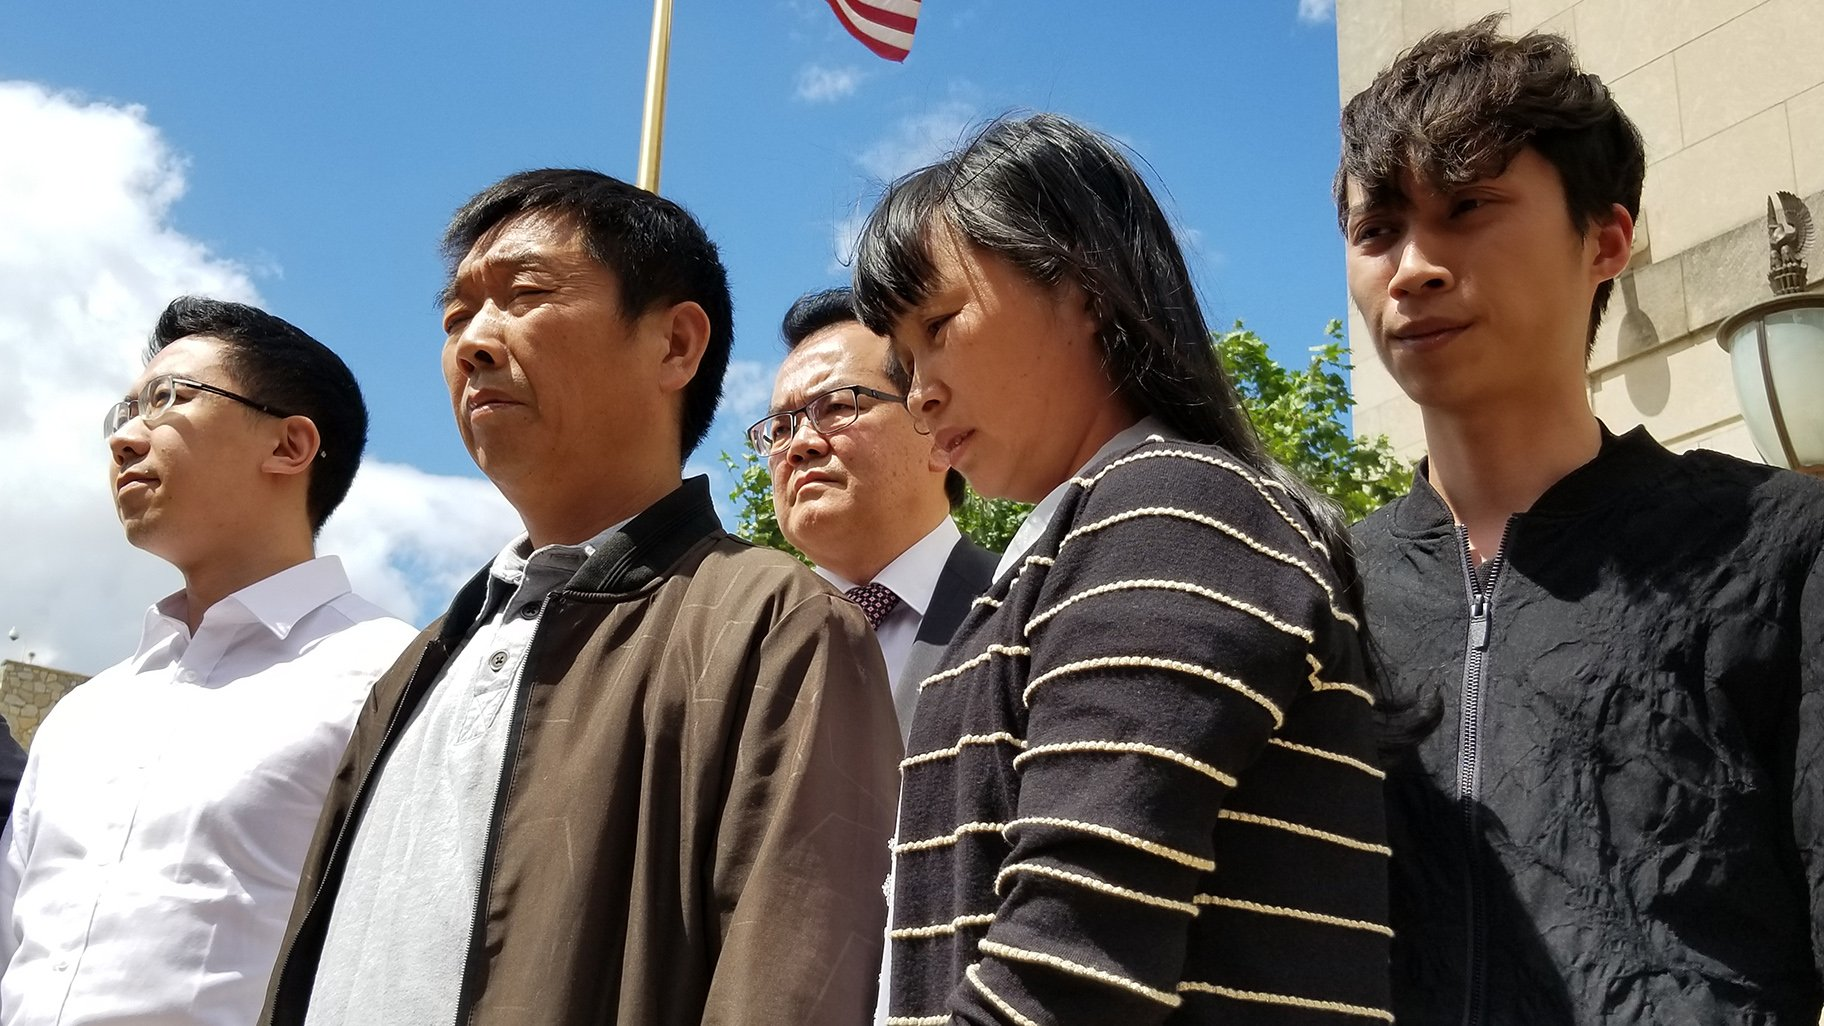 From left to right: Xiaolin Hou, Ronggao Zhang, Lifeng Ye and  Zhengyang Zhang stand outside the Peoria federal court building on June 24, 2019. (Matt Masterson / WTTW News)